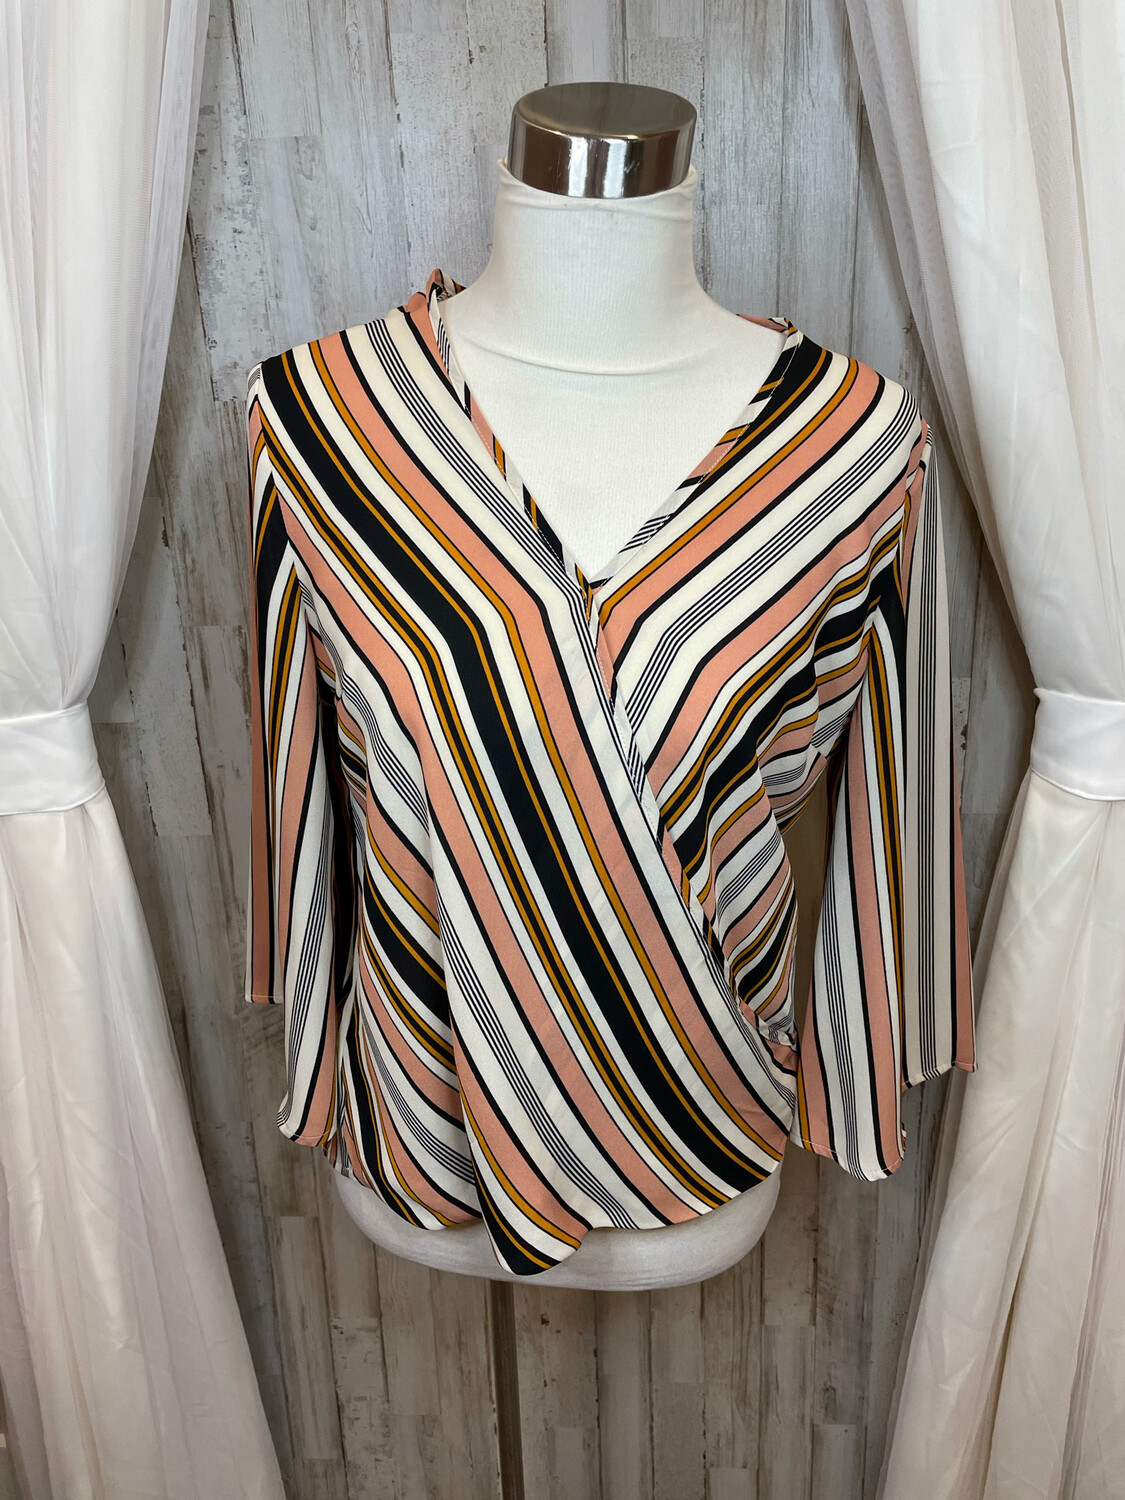 W5 Black Pink & Gold Striped Crossover Top - S